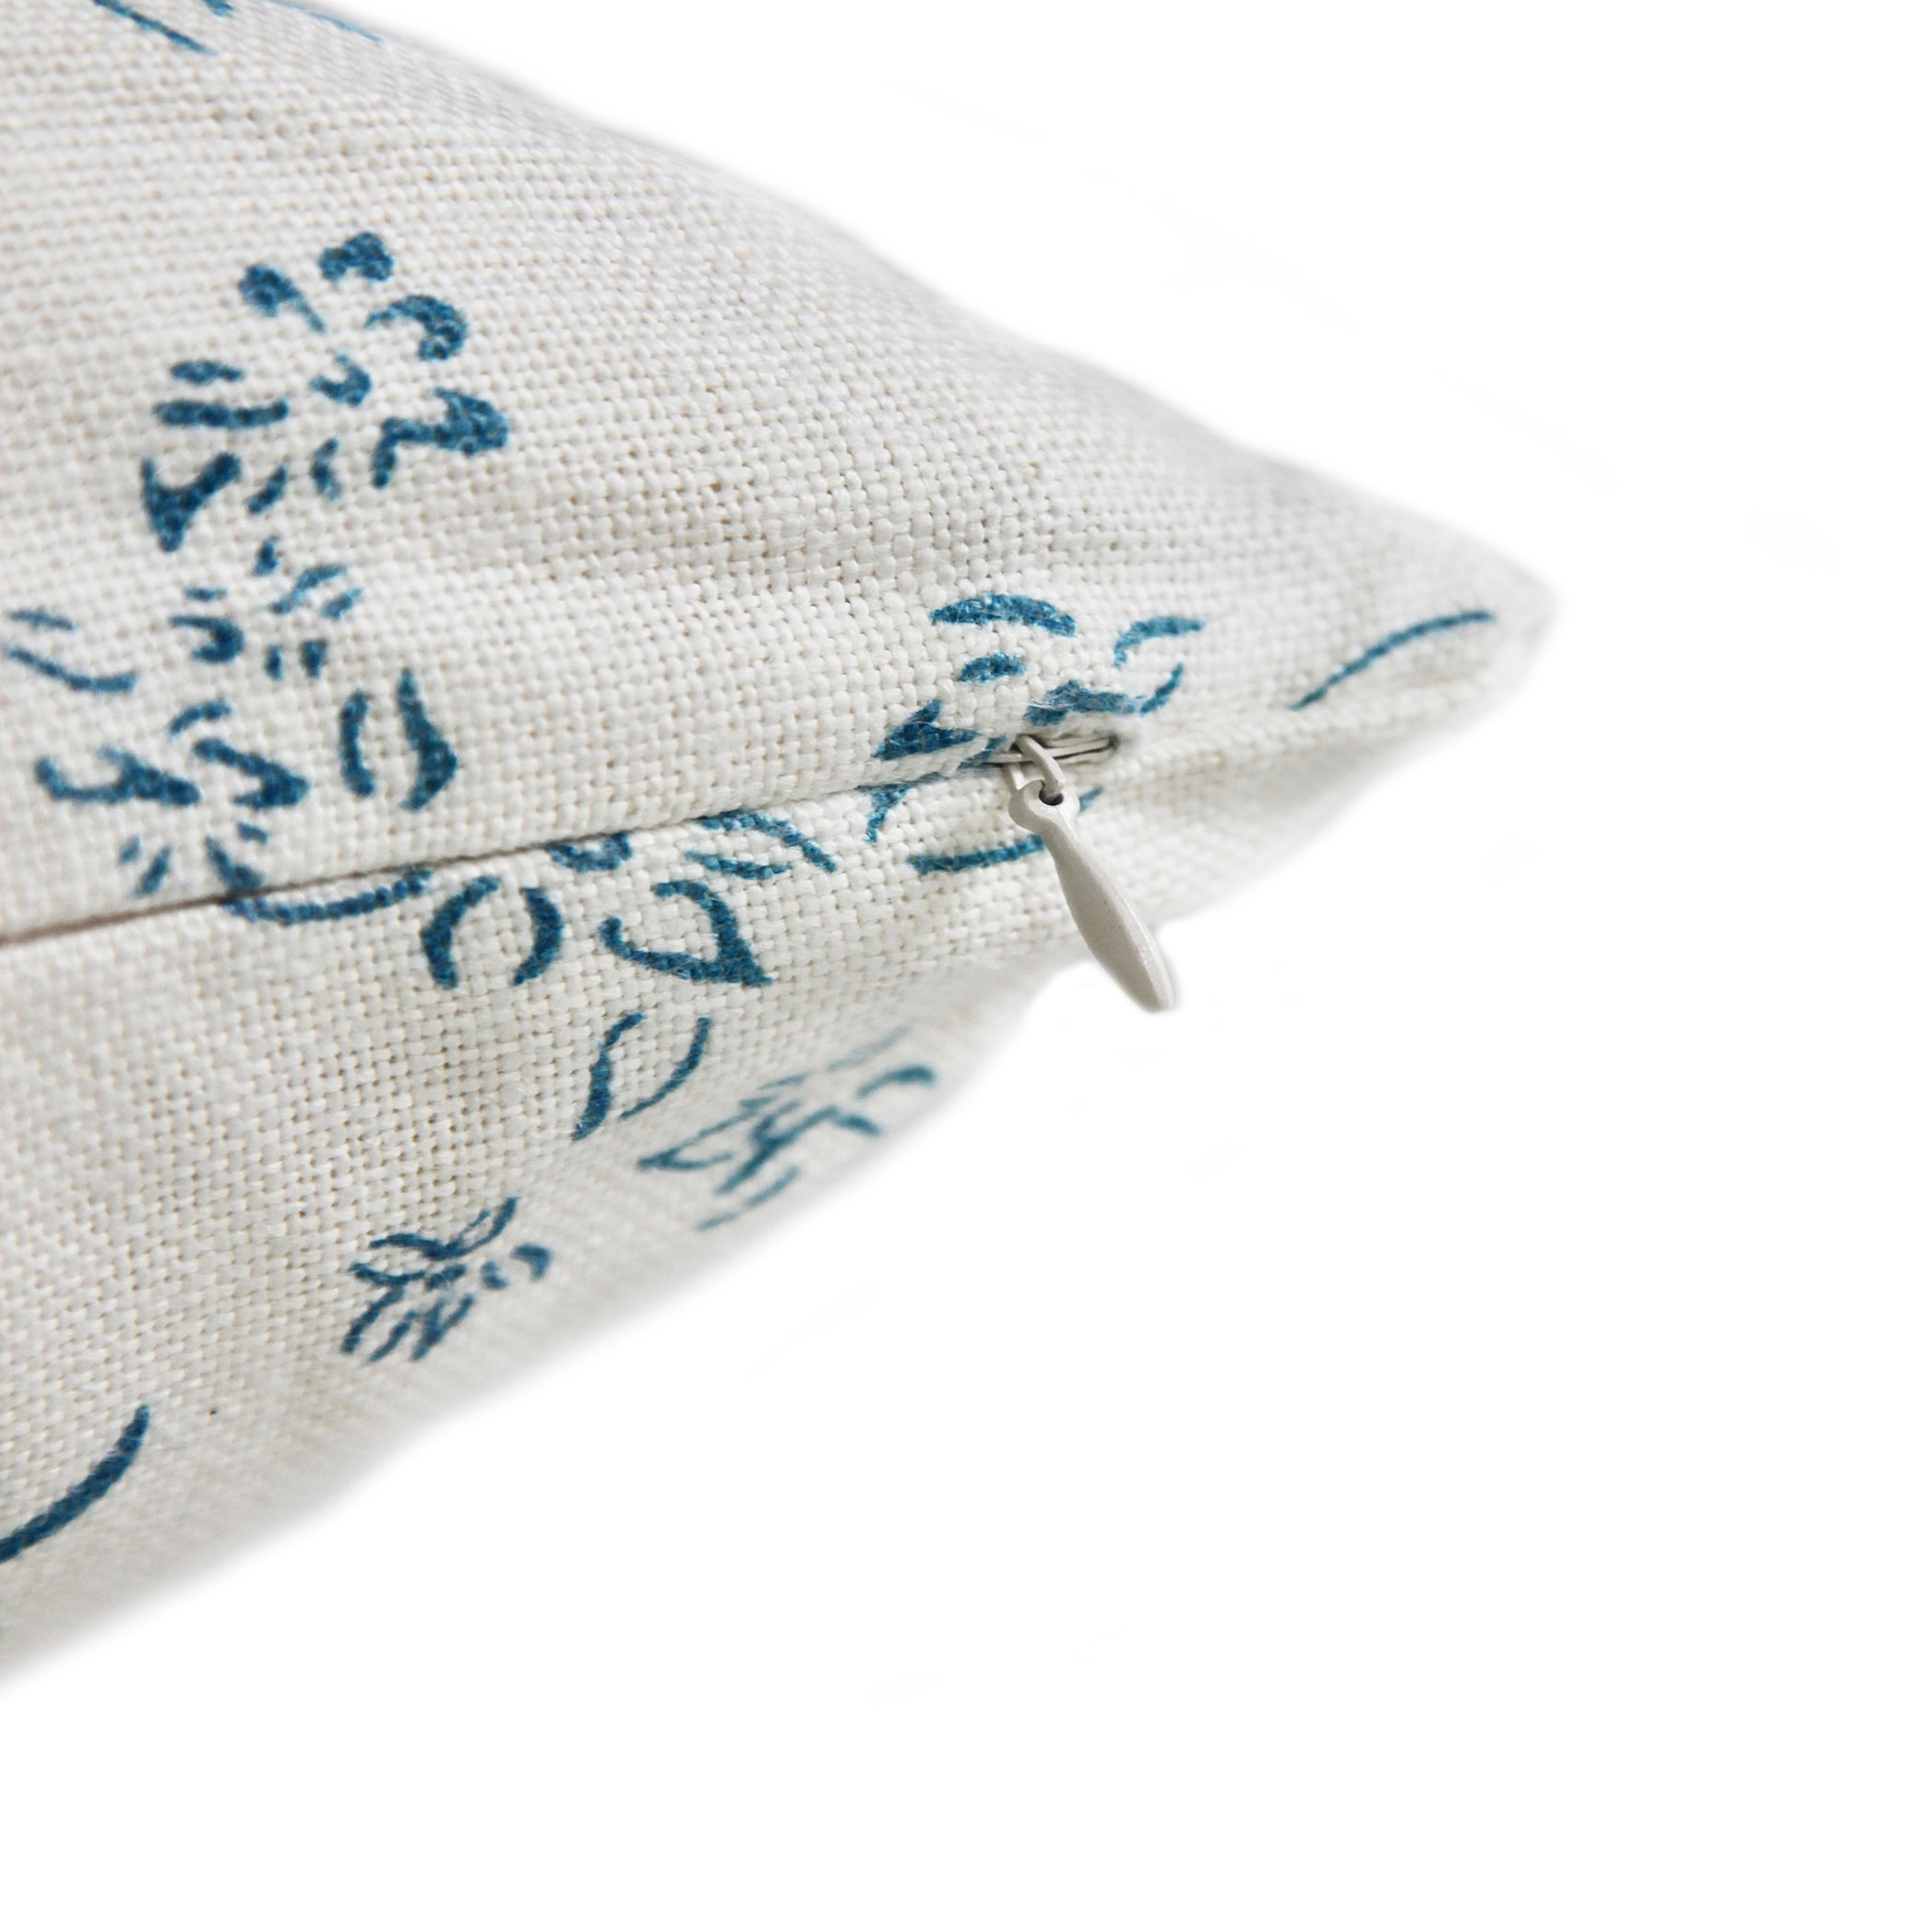 Heavy Linen Falling Flower Cushion in Blue on White, 50cm x 30cm